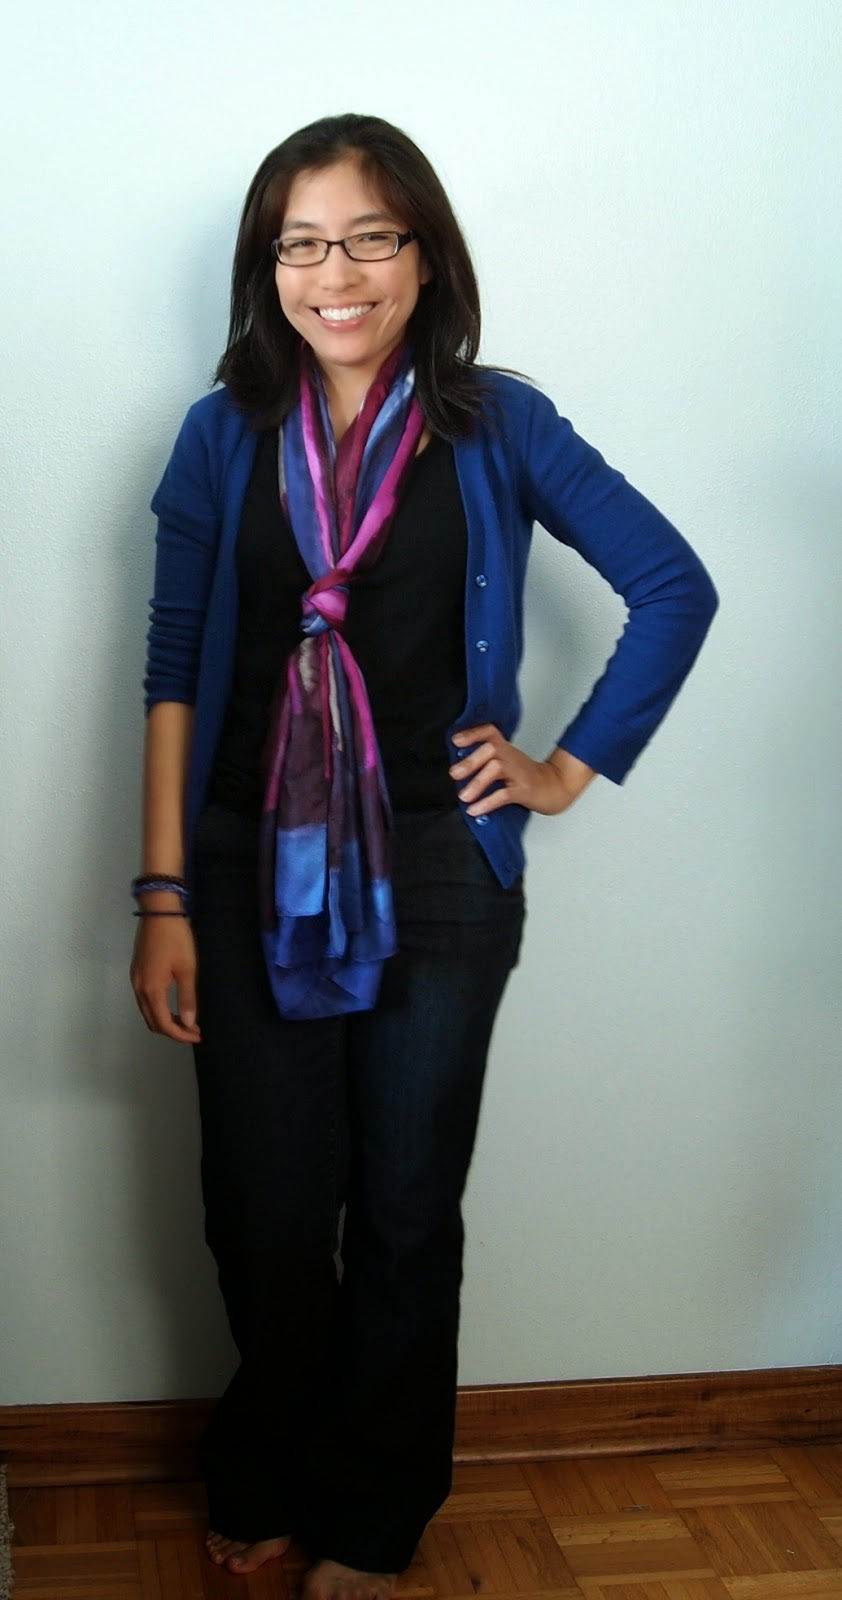 silk scarf cobalt cardigan black tee jeans teacher style